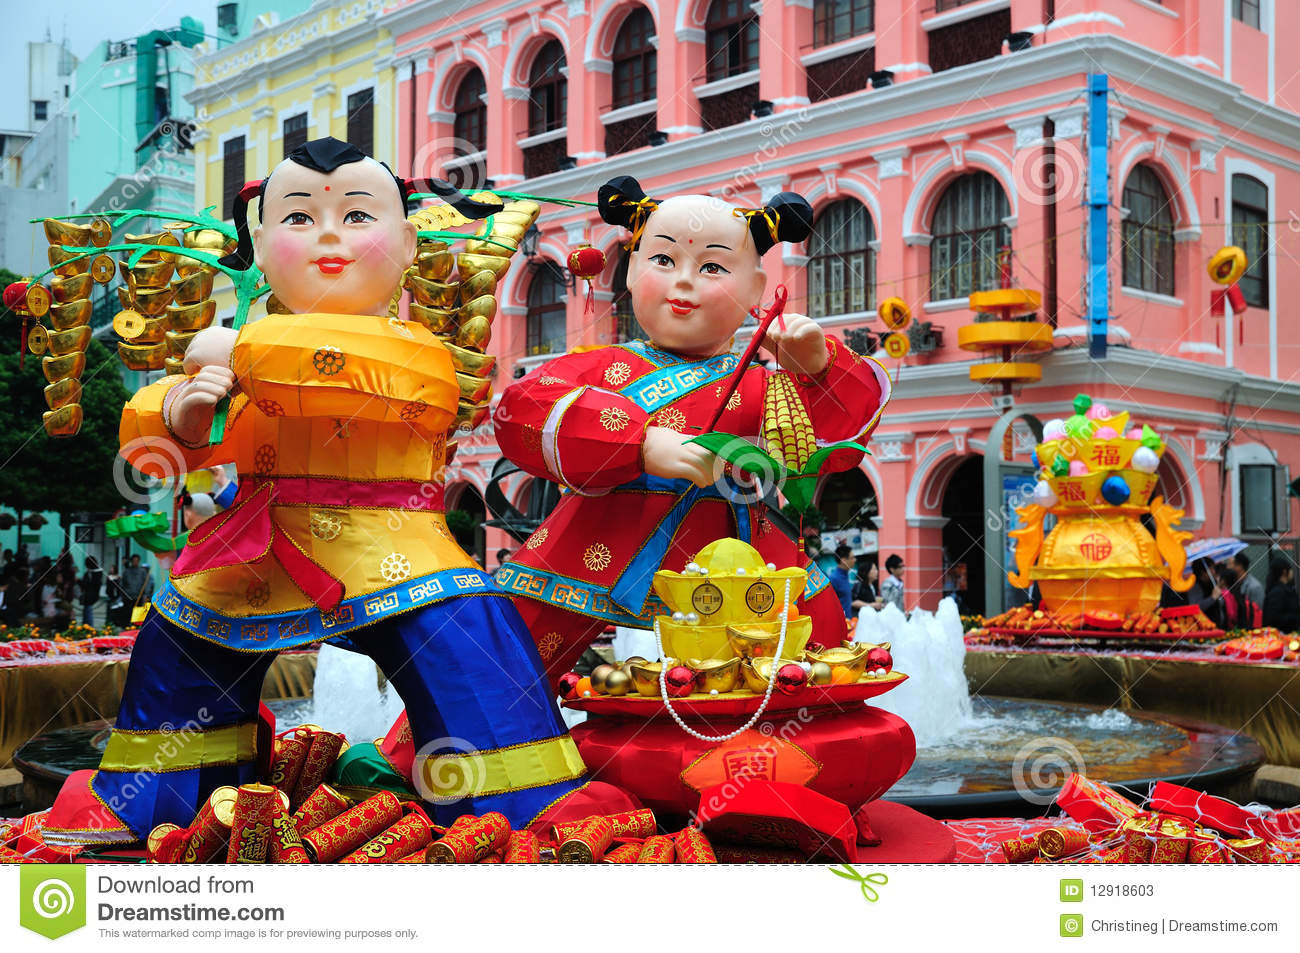 Chinese lunar new year decorations stock photos image - Lunar new year decorations ...